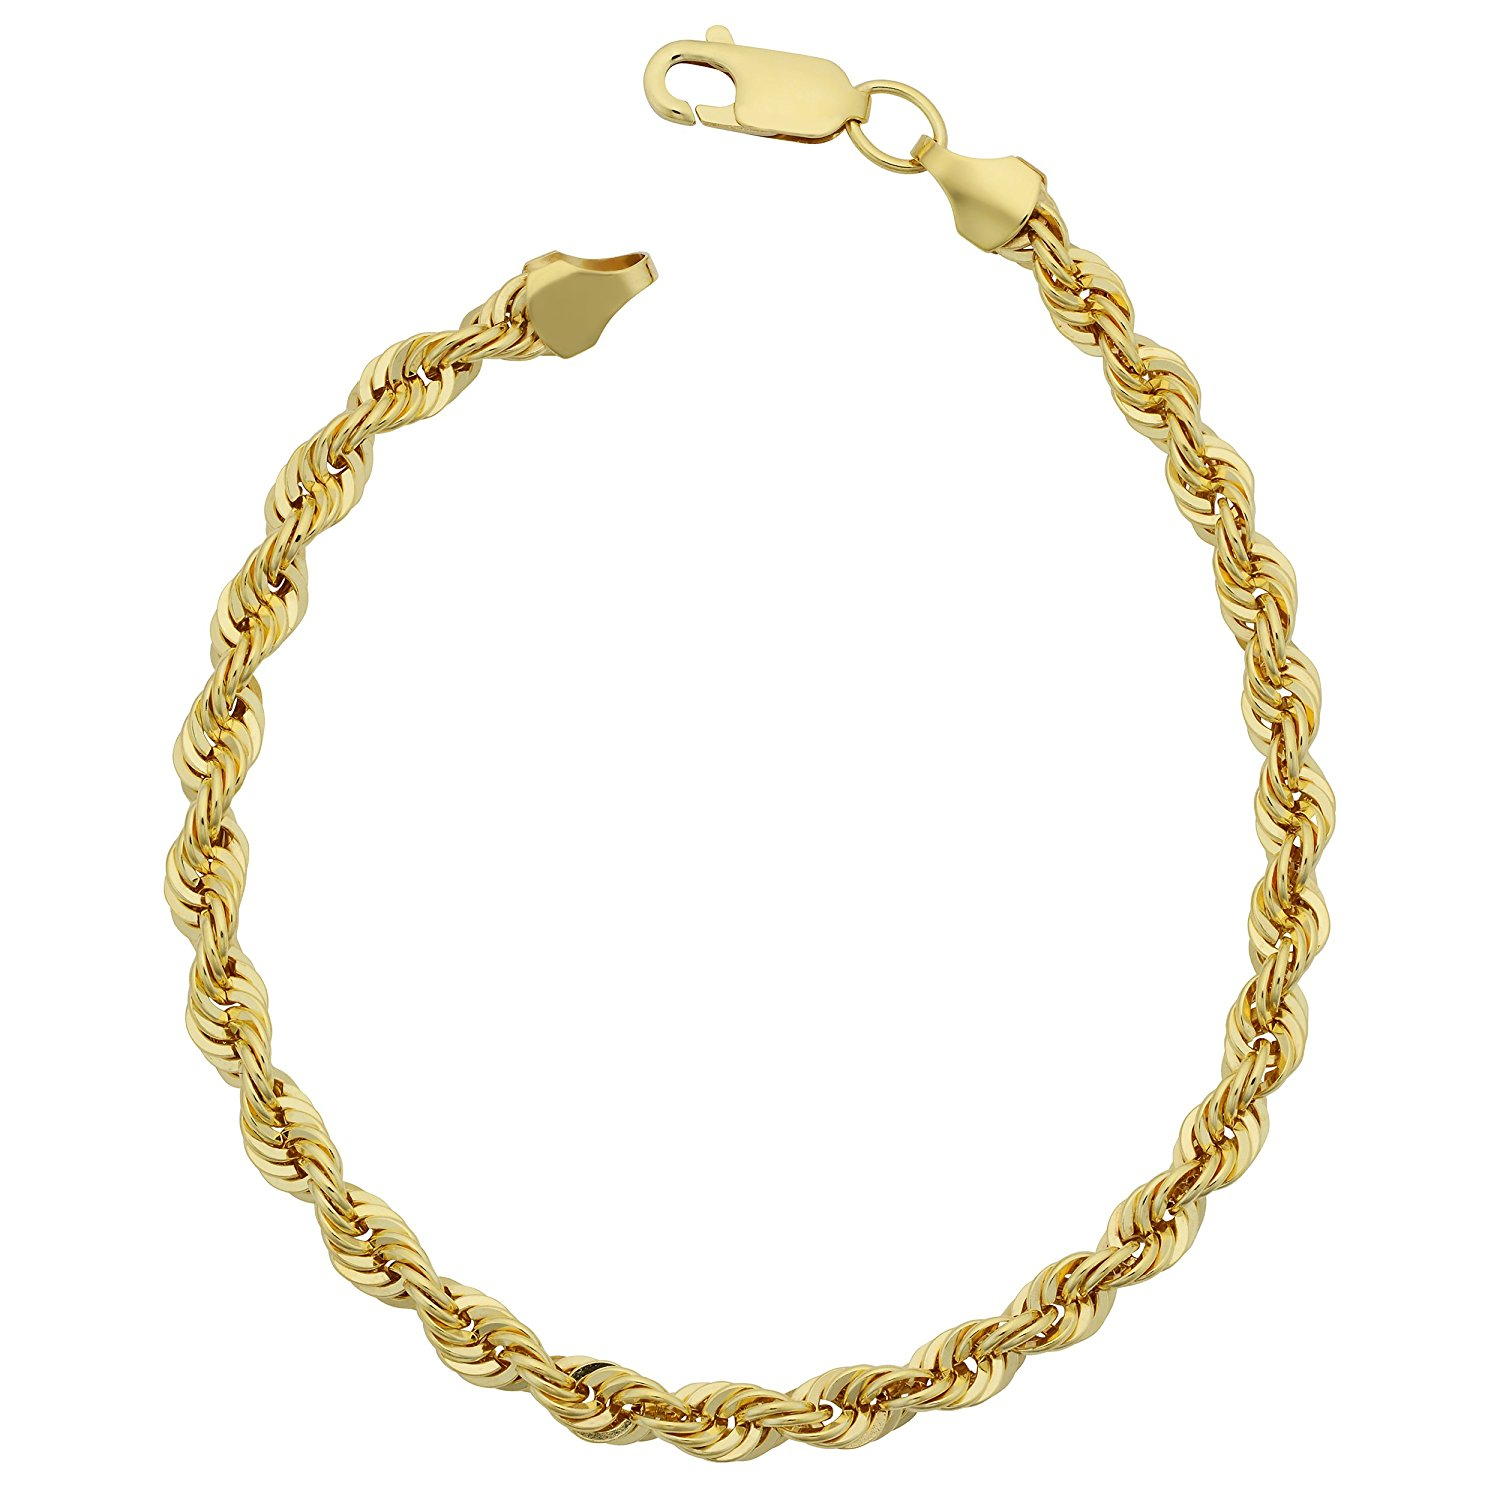 14K Yellow Gold filled Solid Rope Chain Bracelet, 4.5mm, 8.5″